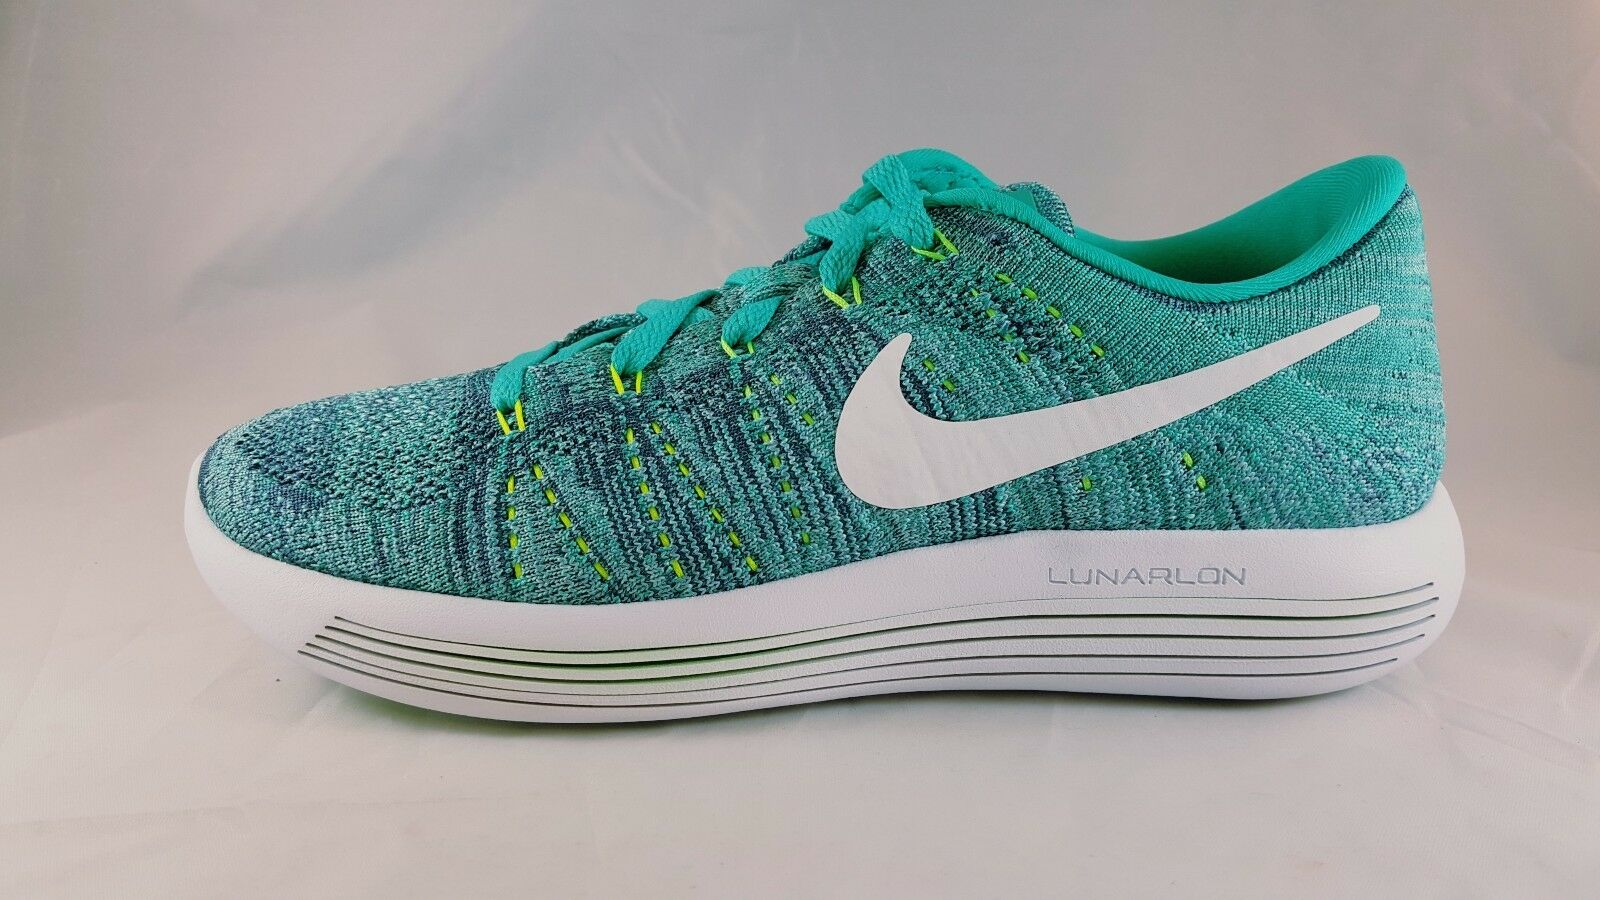 Nike Lunarepic Low Flyknit Women's Running shoes 843765 301 size 5.5 The most popular shoes for men and women